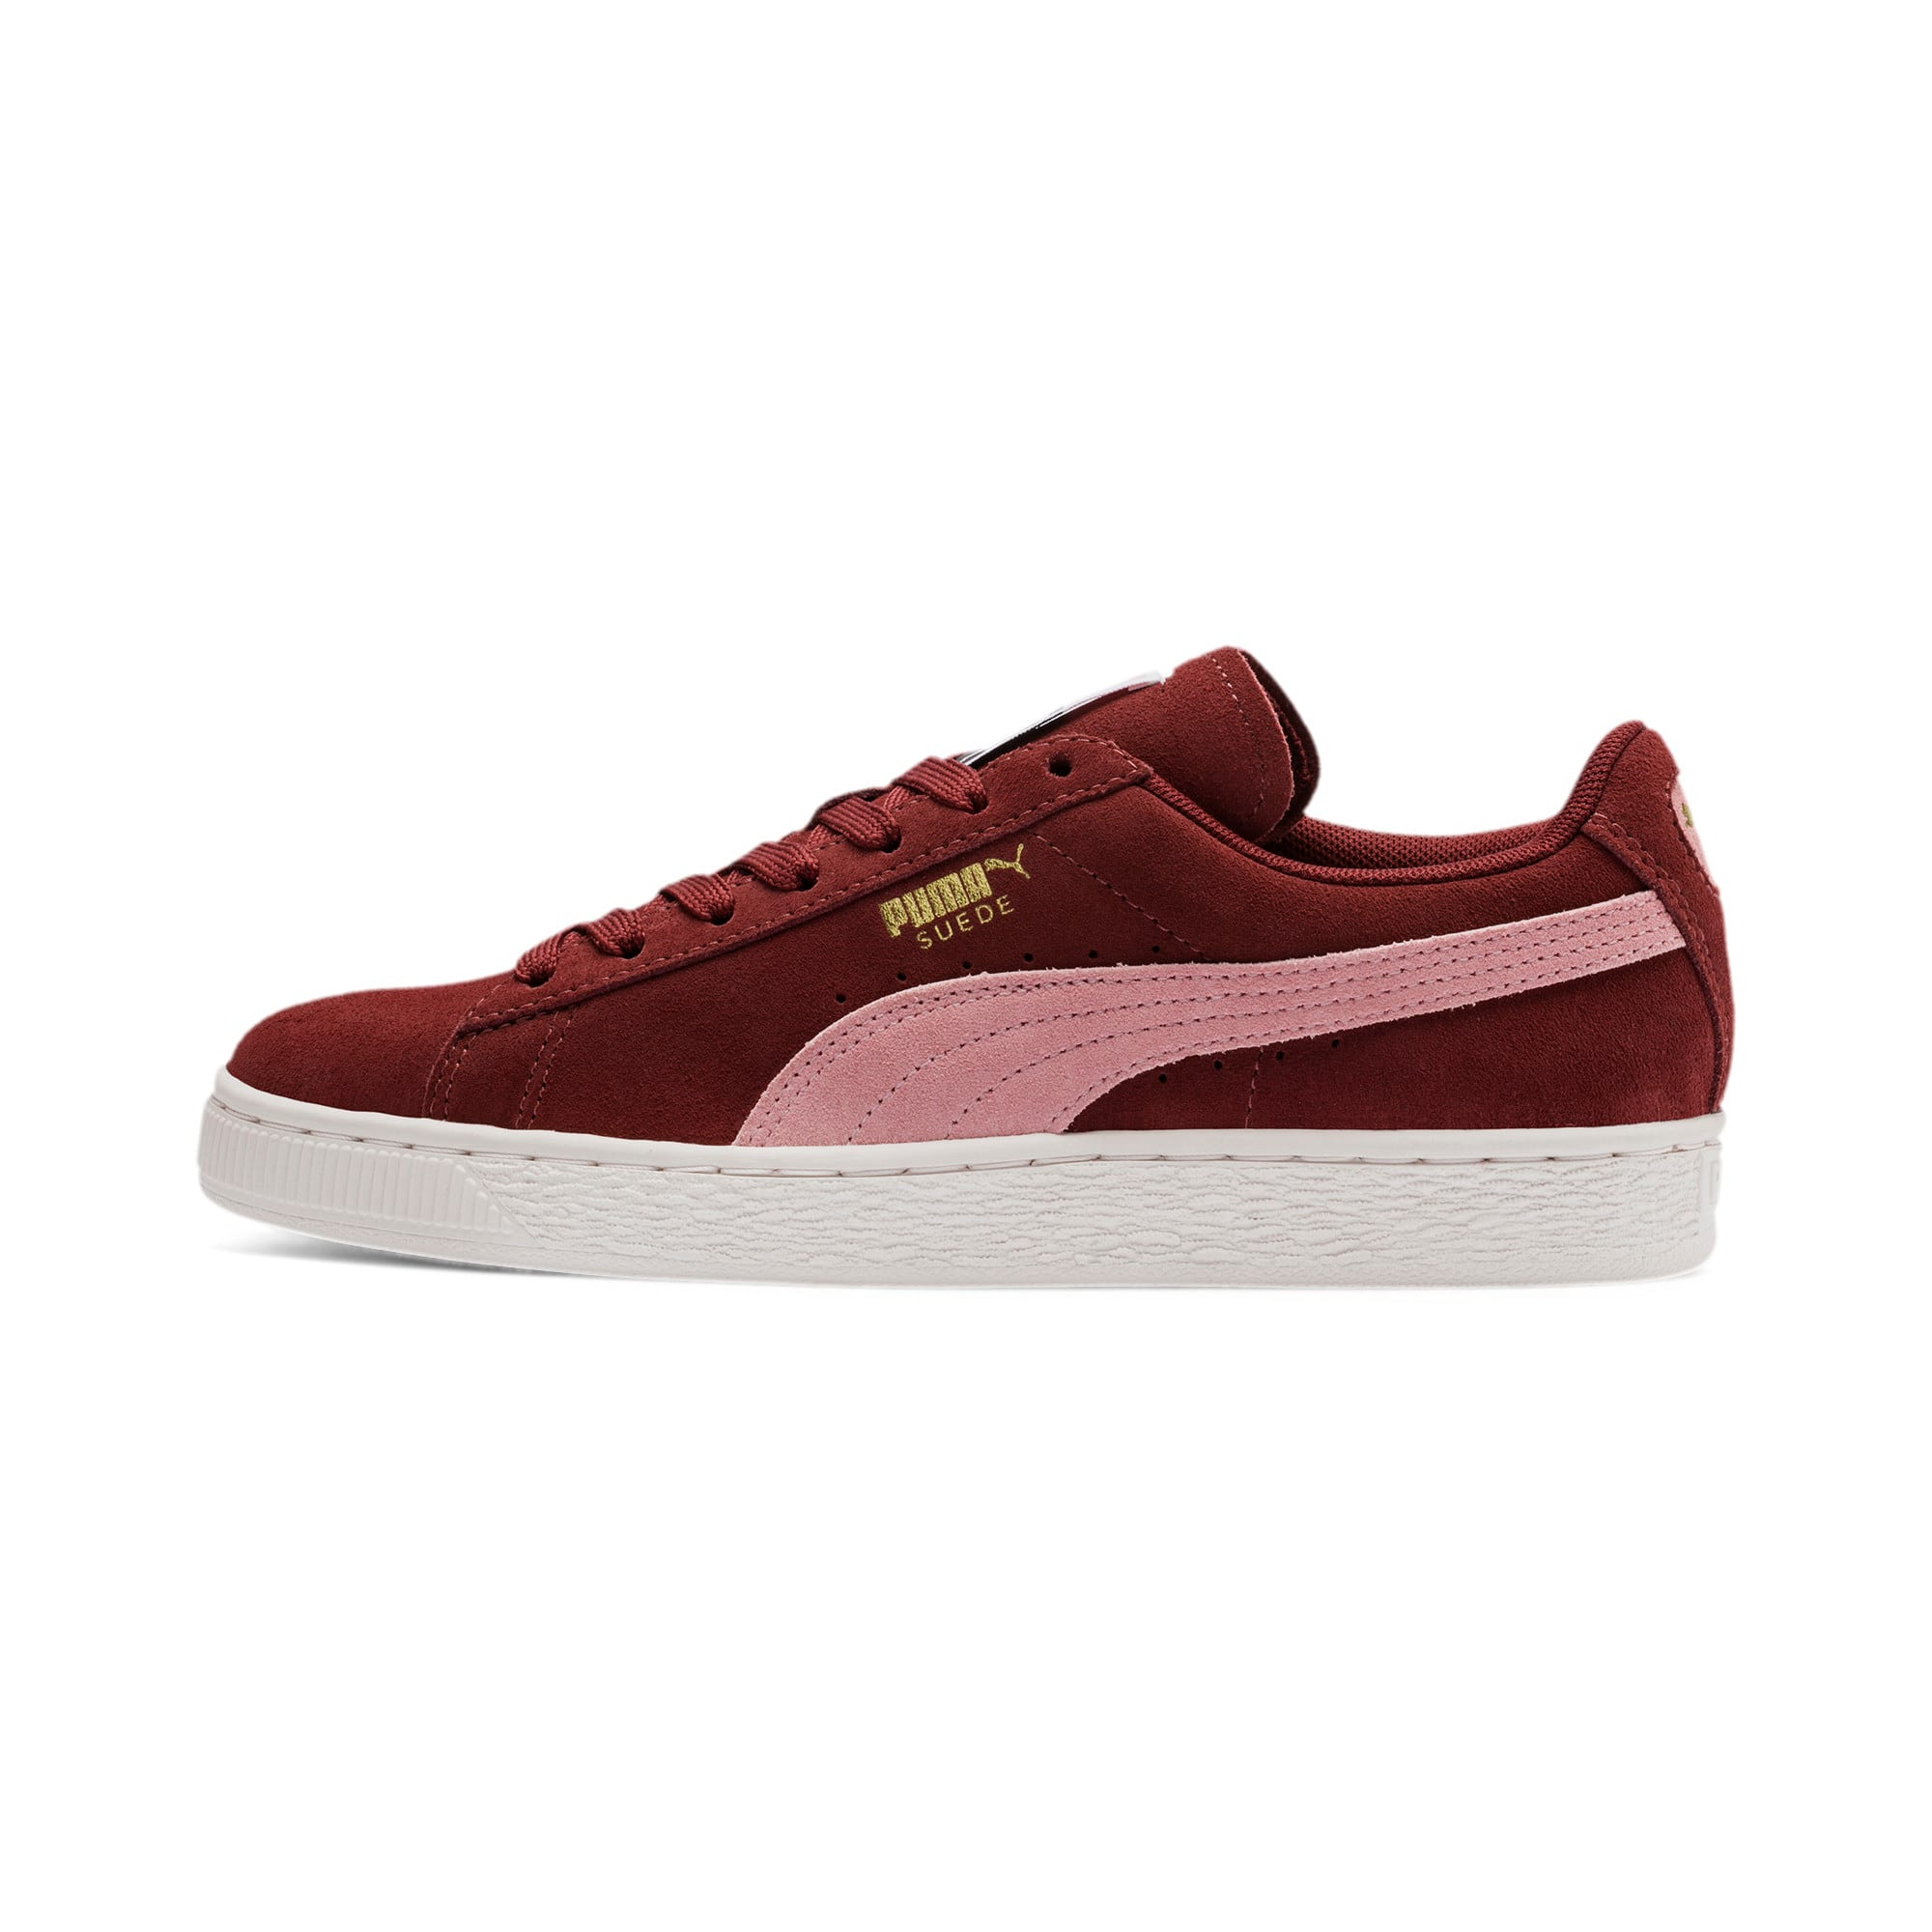 Thumbnail 1 of Suede Classic Women's Sneakers, Fired Brick-Bridal Rose, medium